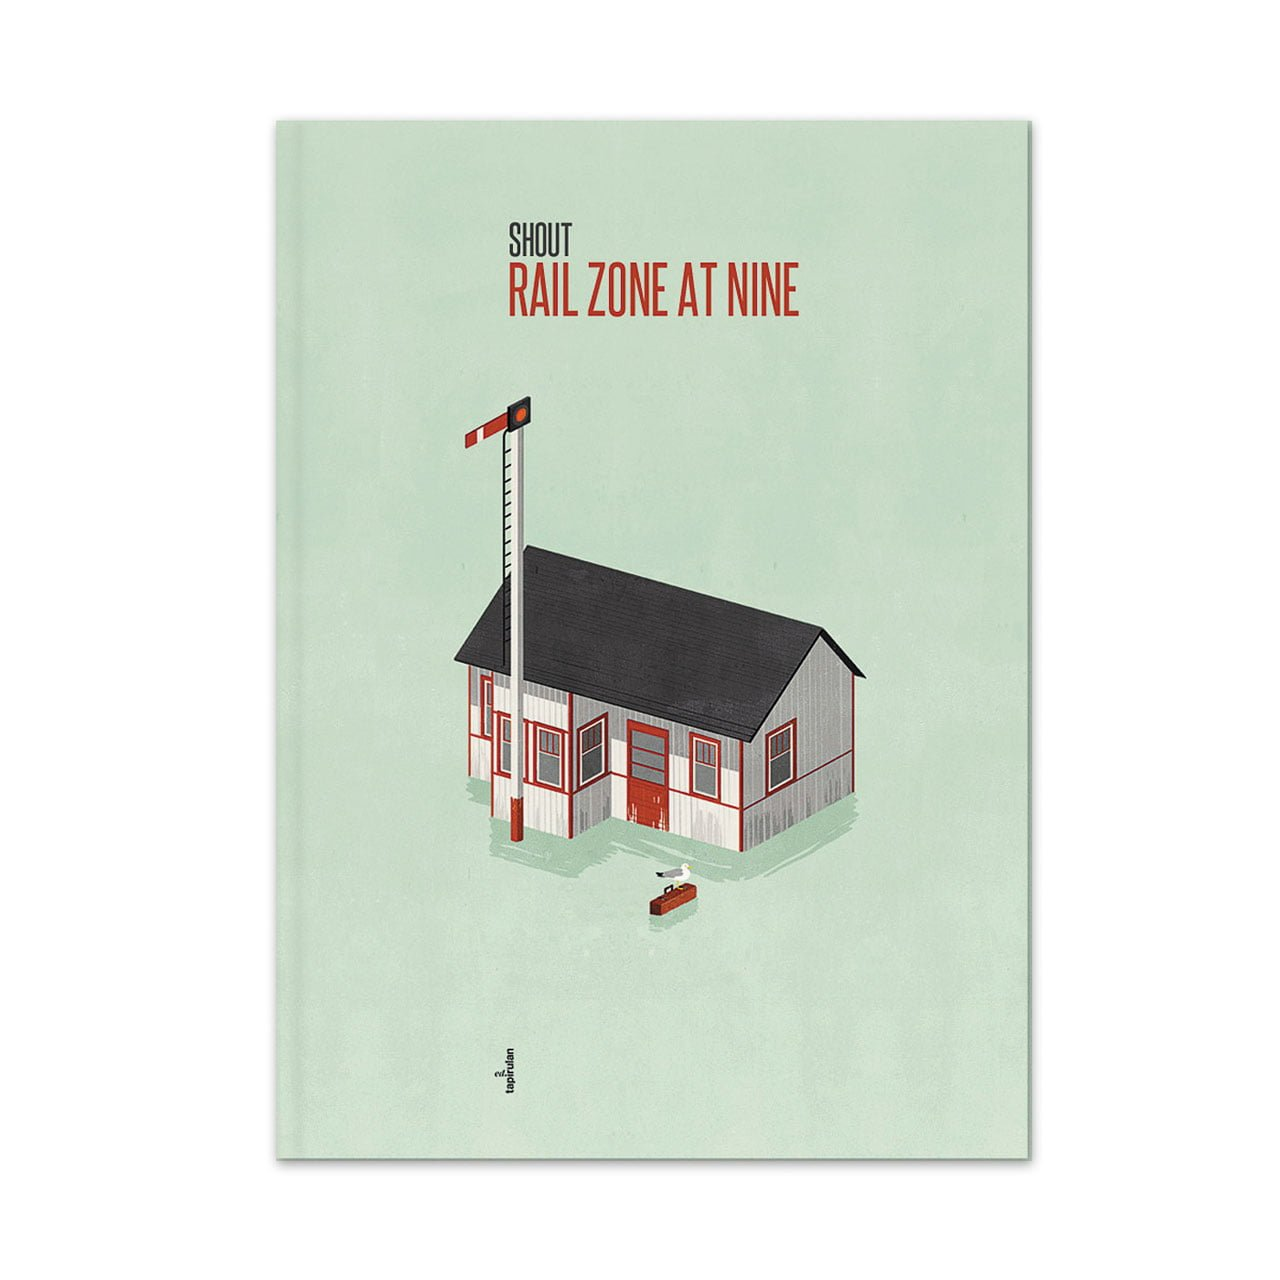 Rail zone at nine - Shout